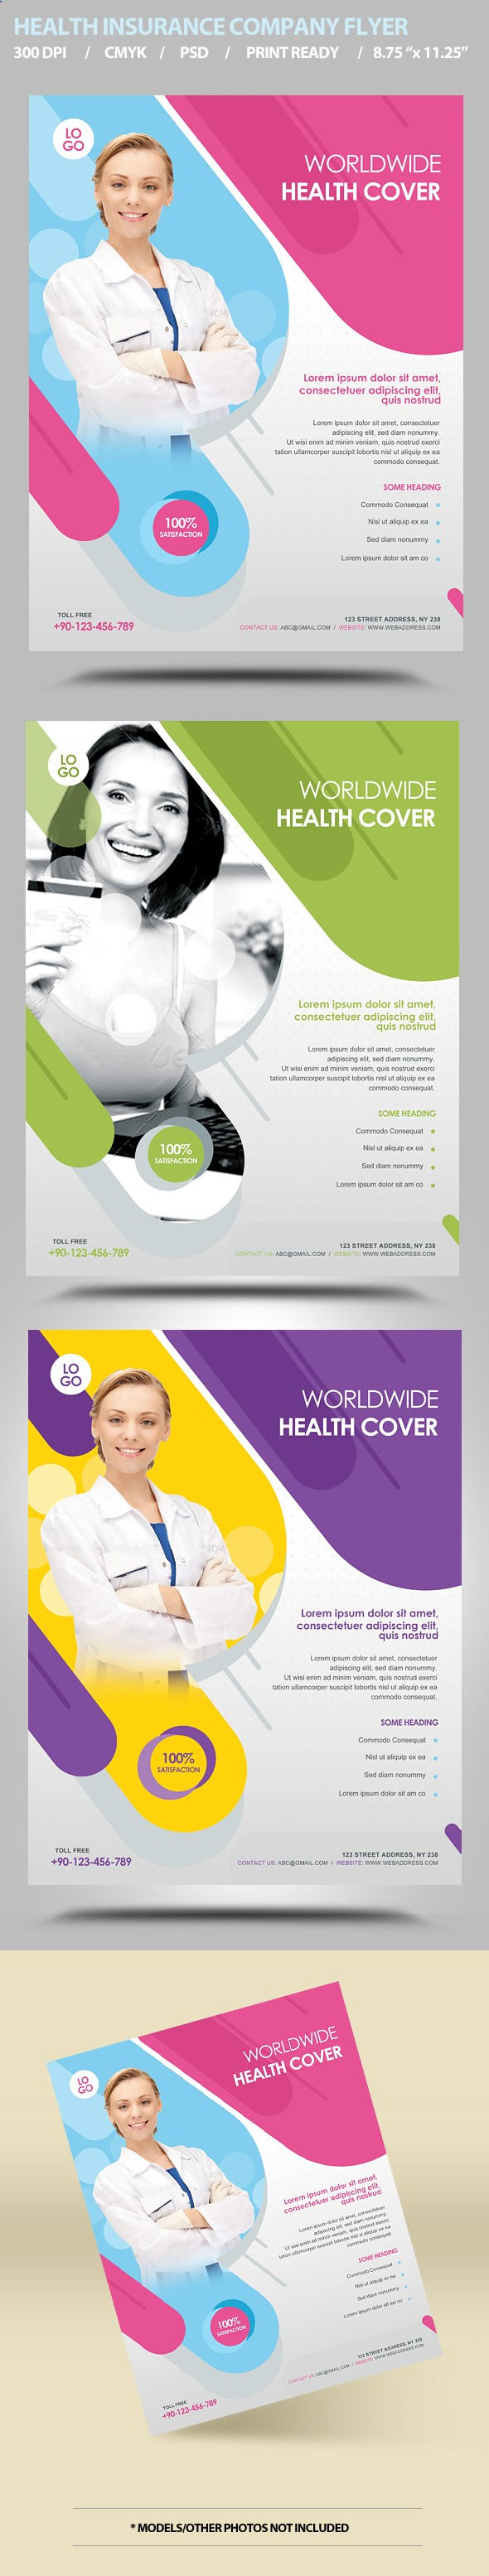 Health Insurance Flyer Template By Satgur  Via Behance  Graphic